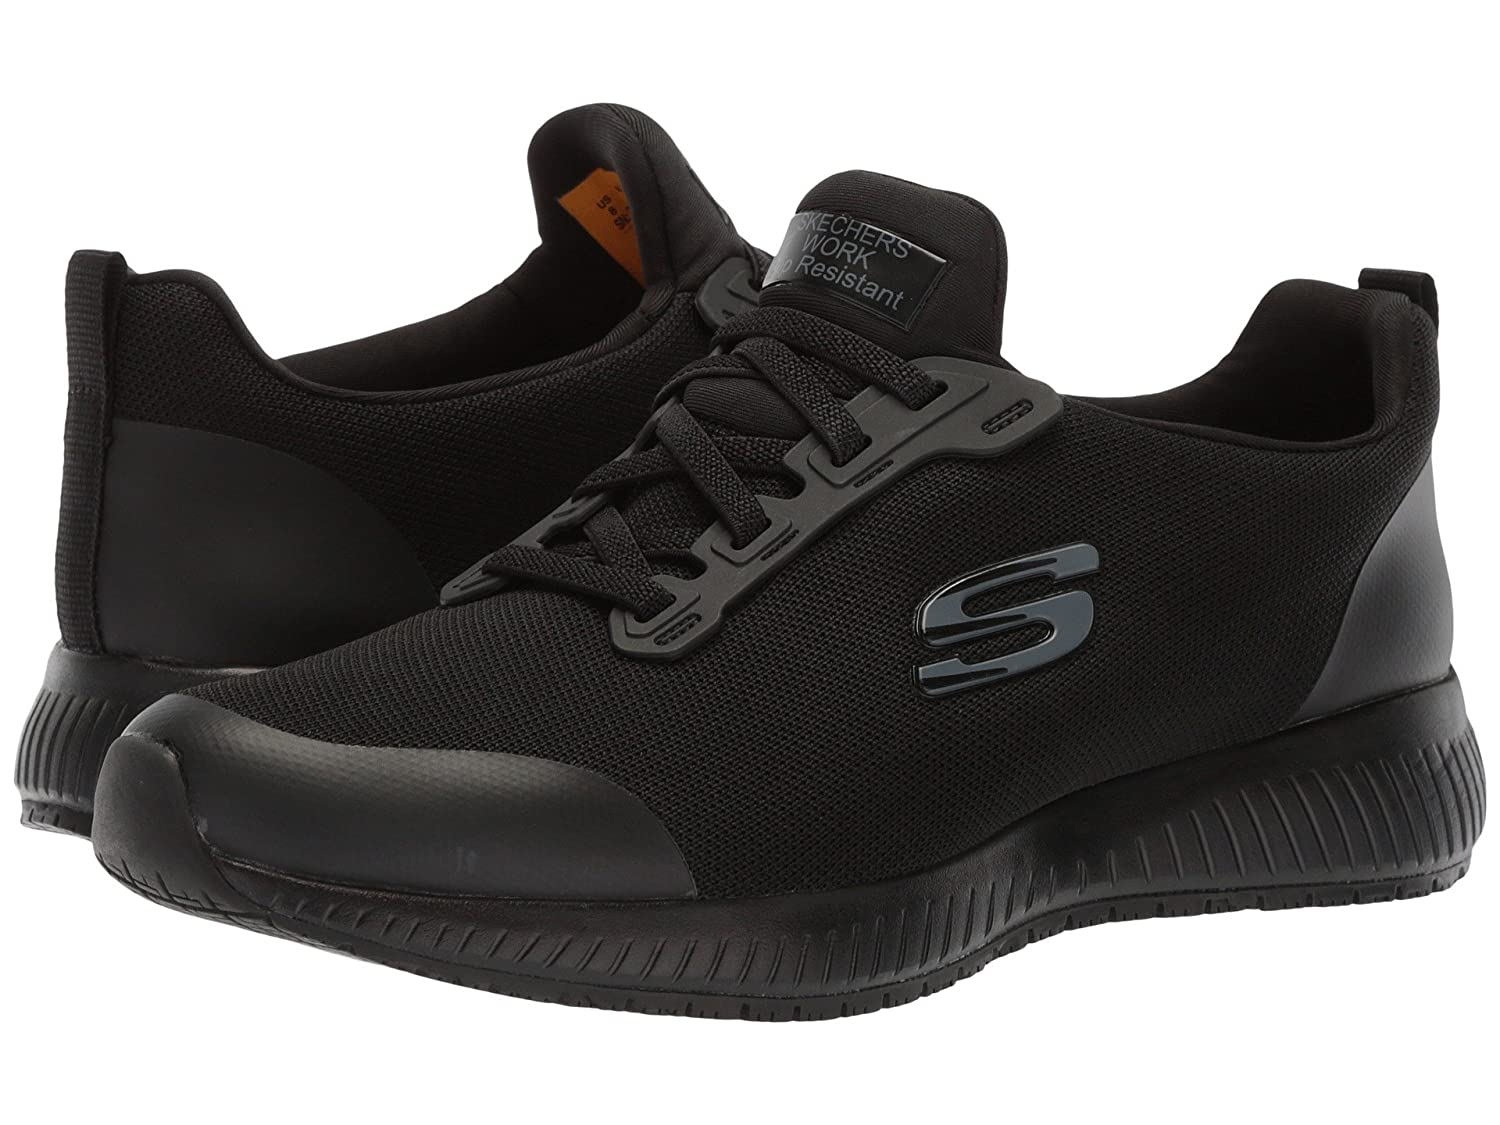 (スケッチャーズ) SKECHERS レディースワークシューズナースシューズ靴 Ghenter Bronaugh [並行輸入品] B07FS55YPH 7 (24cm) B Medium|Black Mesh/Water/Stain Repellent Treatment Black Mesh/Water/Stain Repellent Treatment 7 (24cm) B Medium